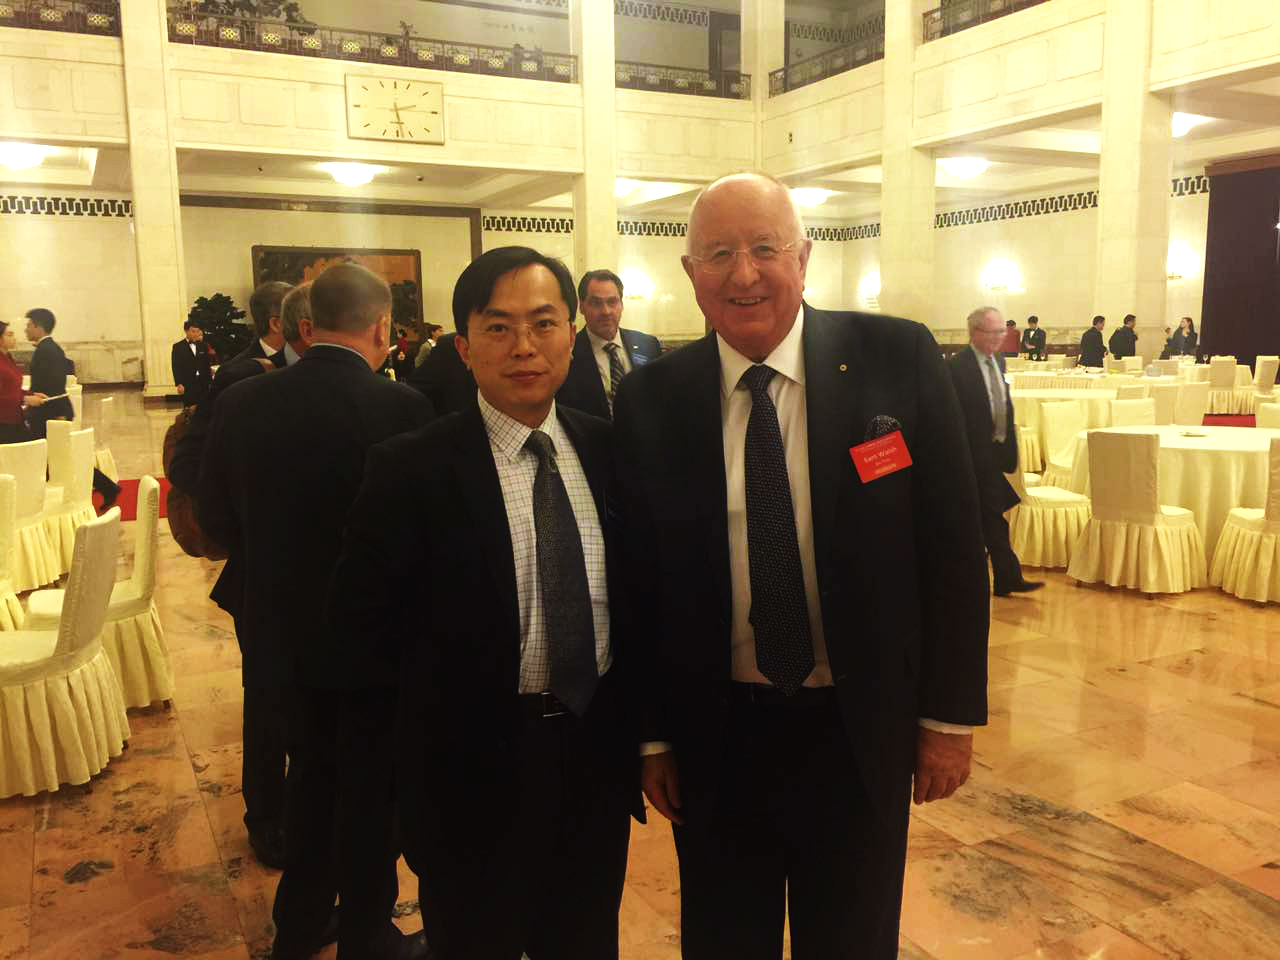 Sam Walsh and Dr. Andy Song